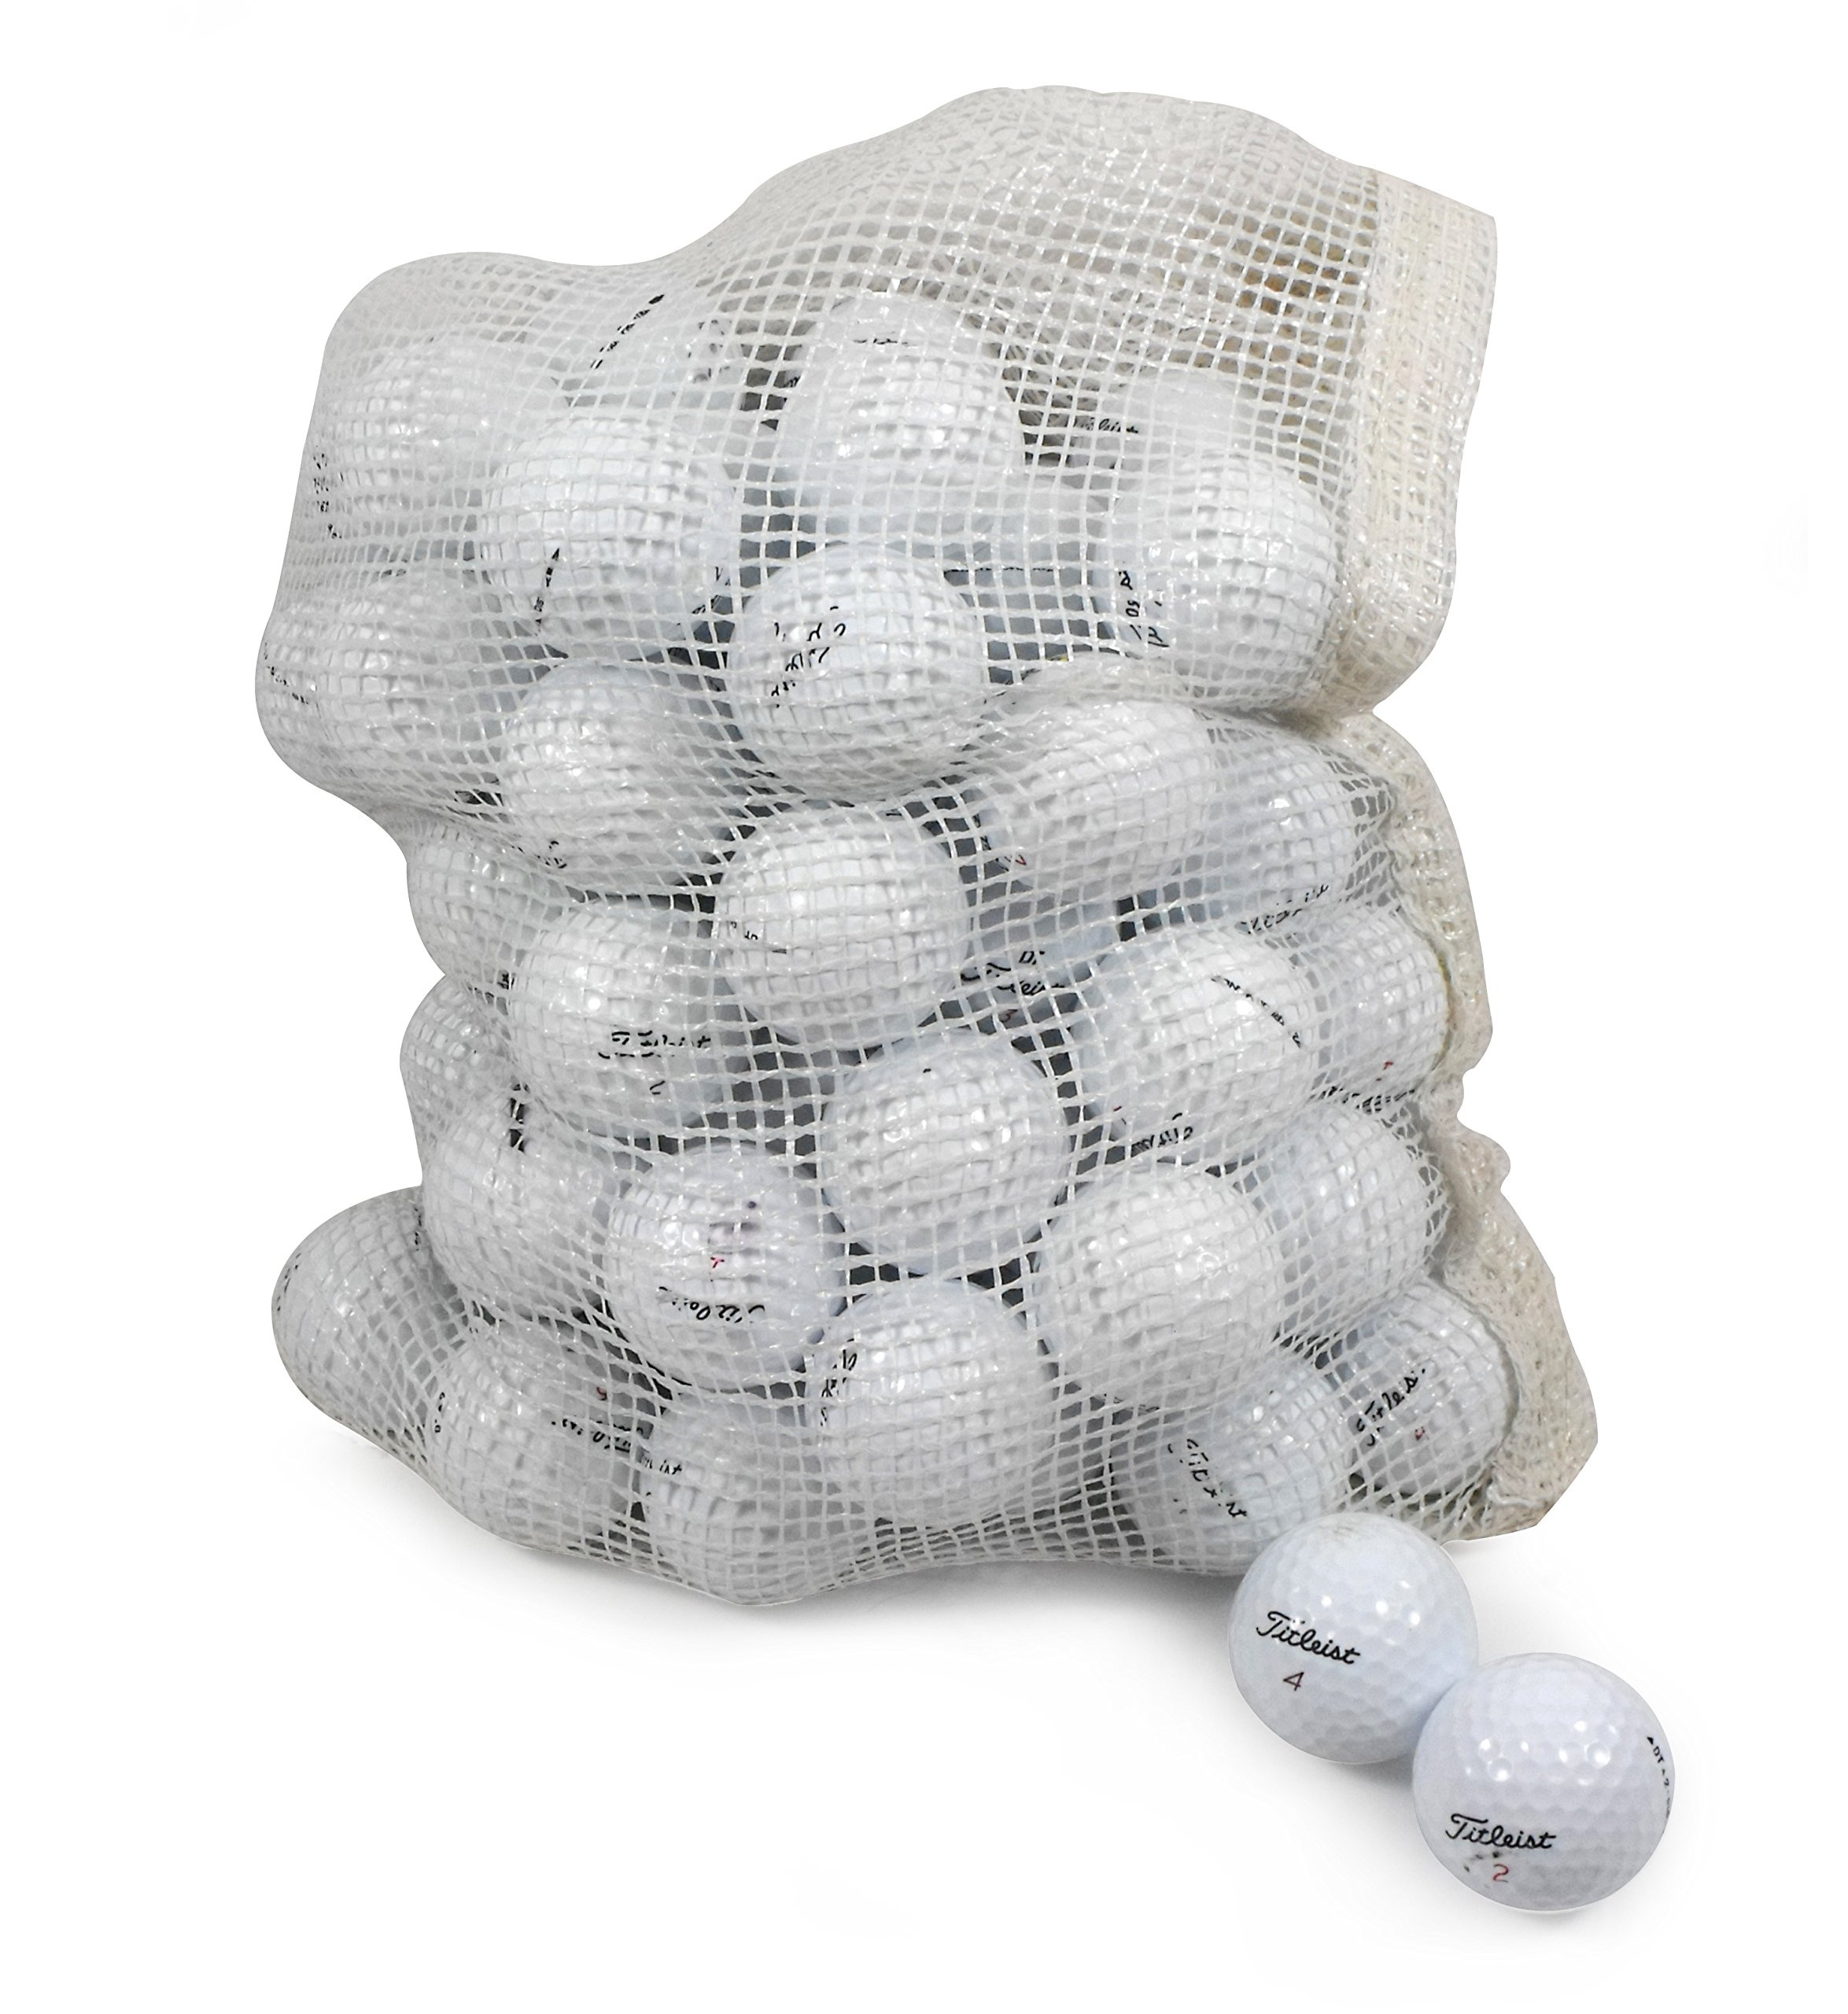 Titleist Recycled Used Golf Balls Cleaned B/C Grade Golf Balls 72 Ball Assorted Models in Onion Mesh Bag by Titleist